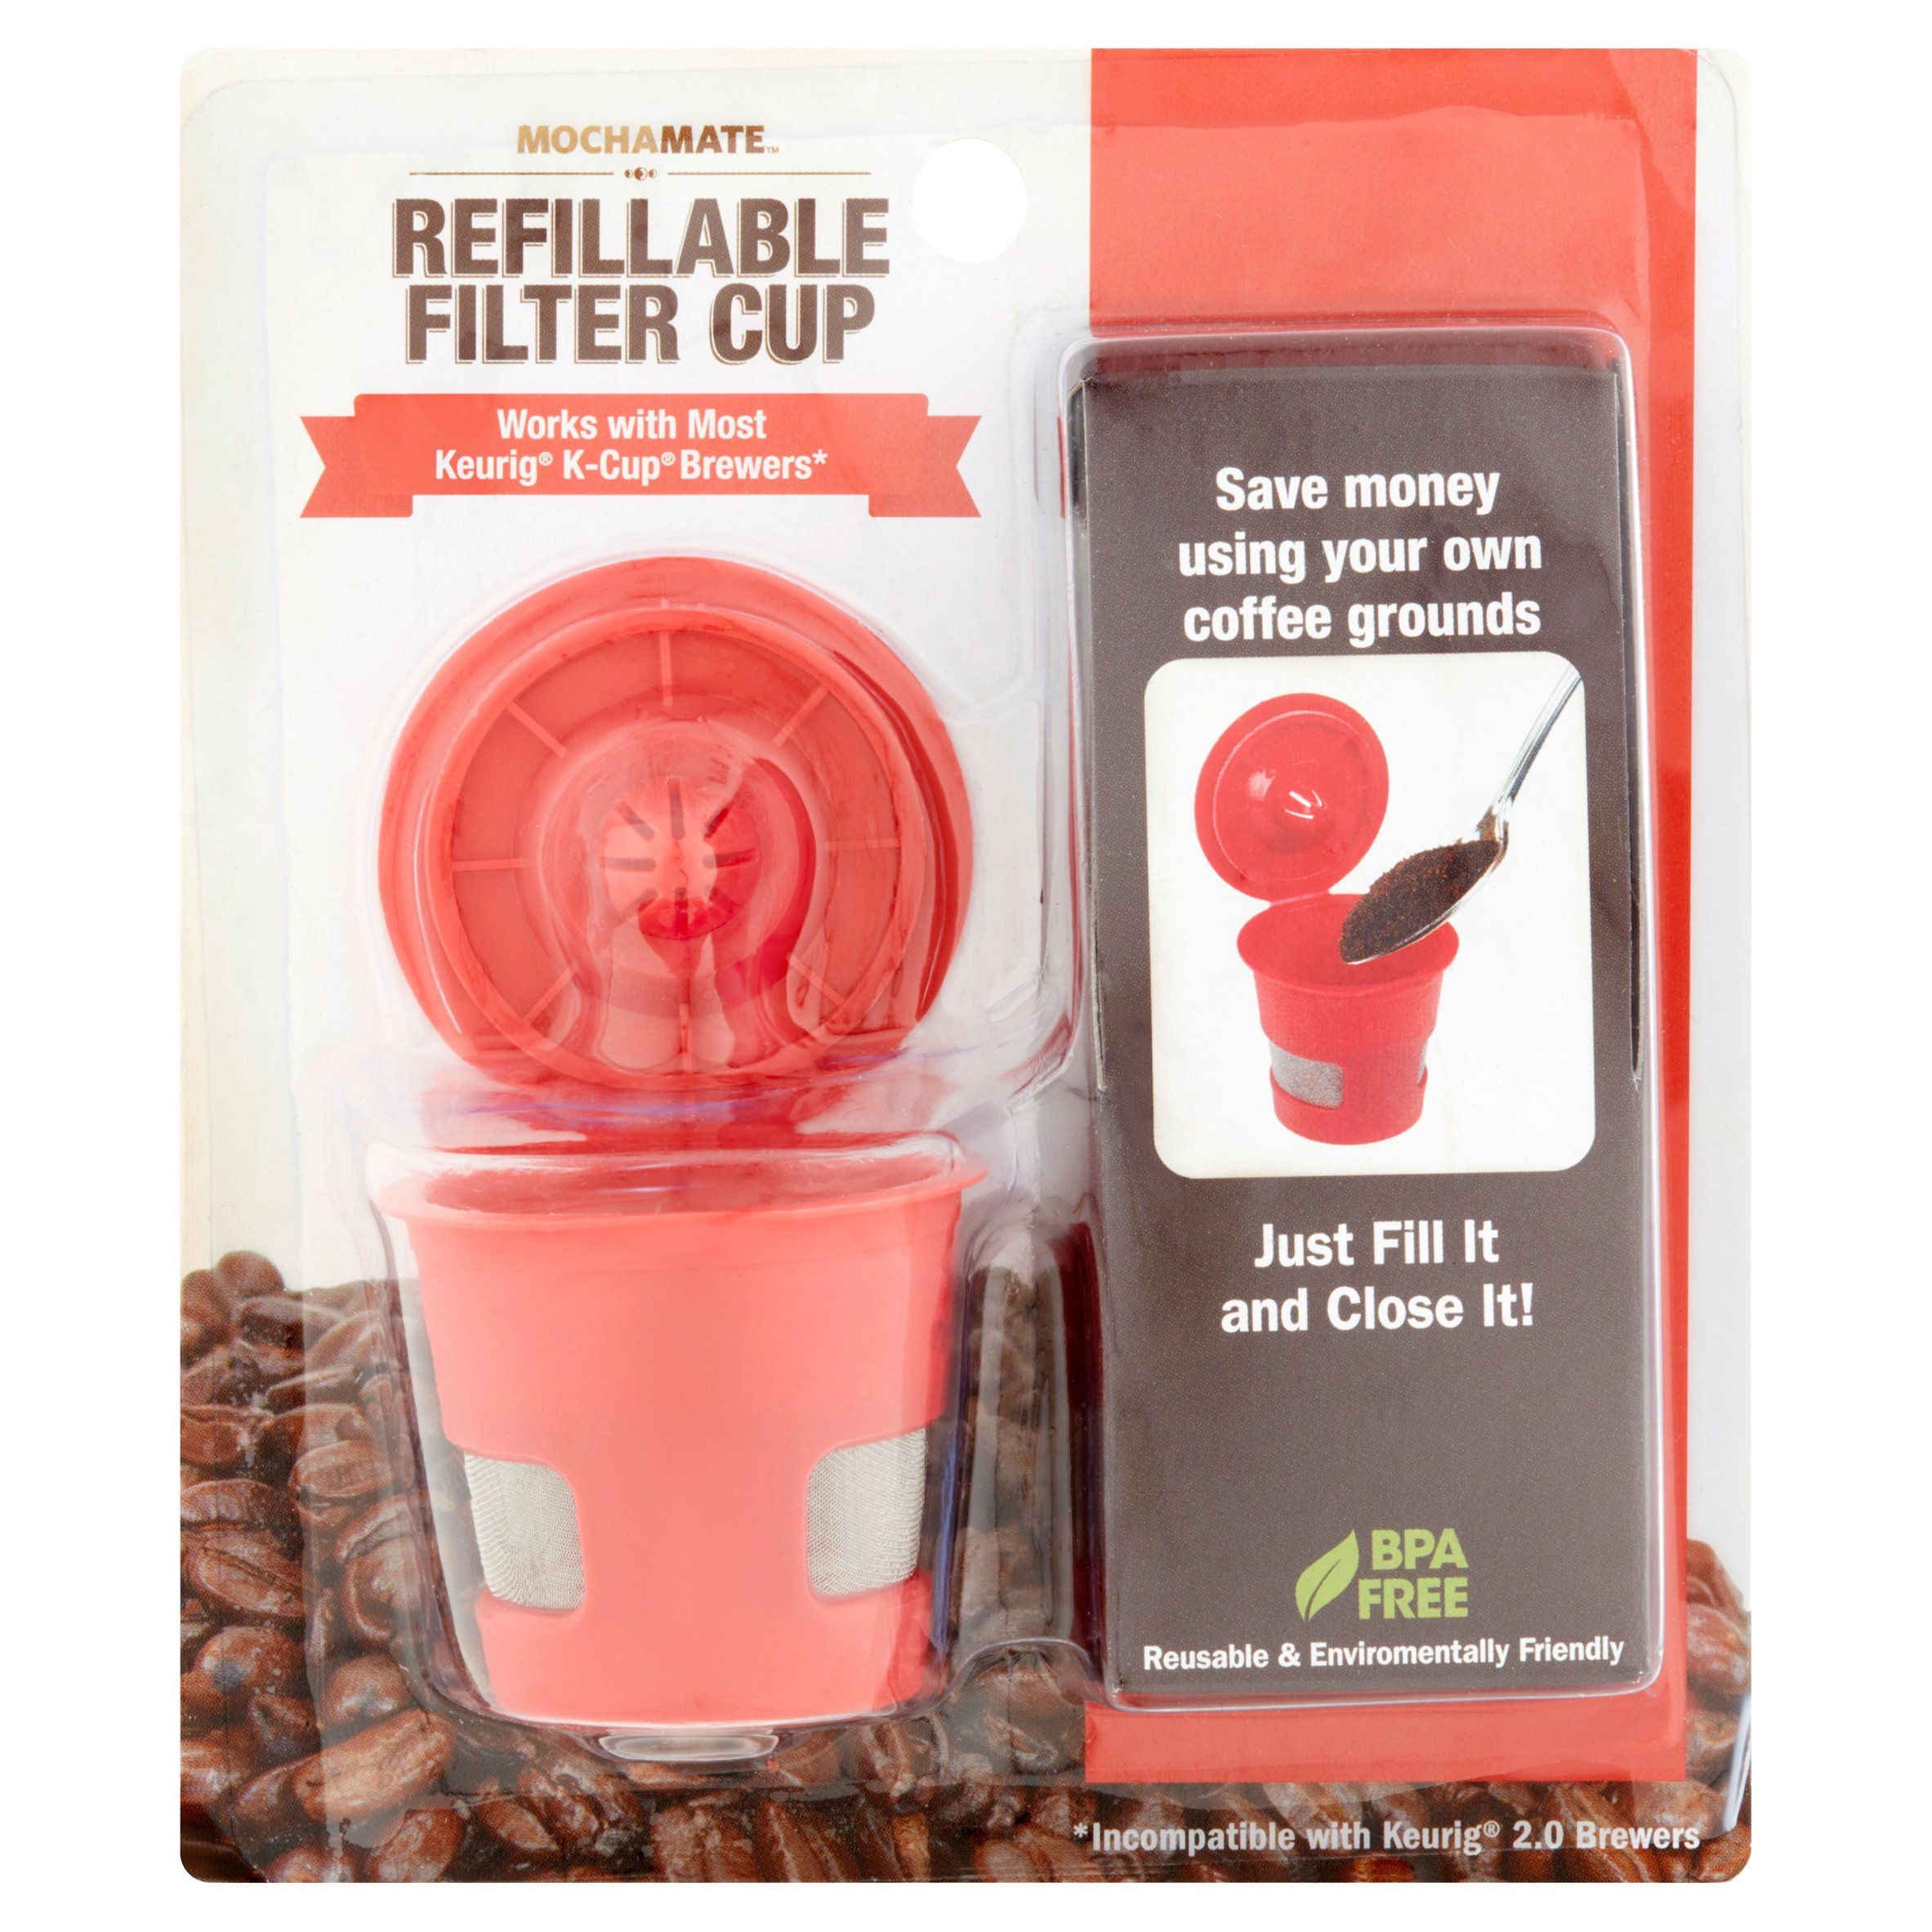 Coffee Filter by Best Brands Consumer Products, Inc.